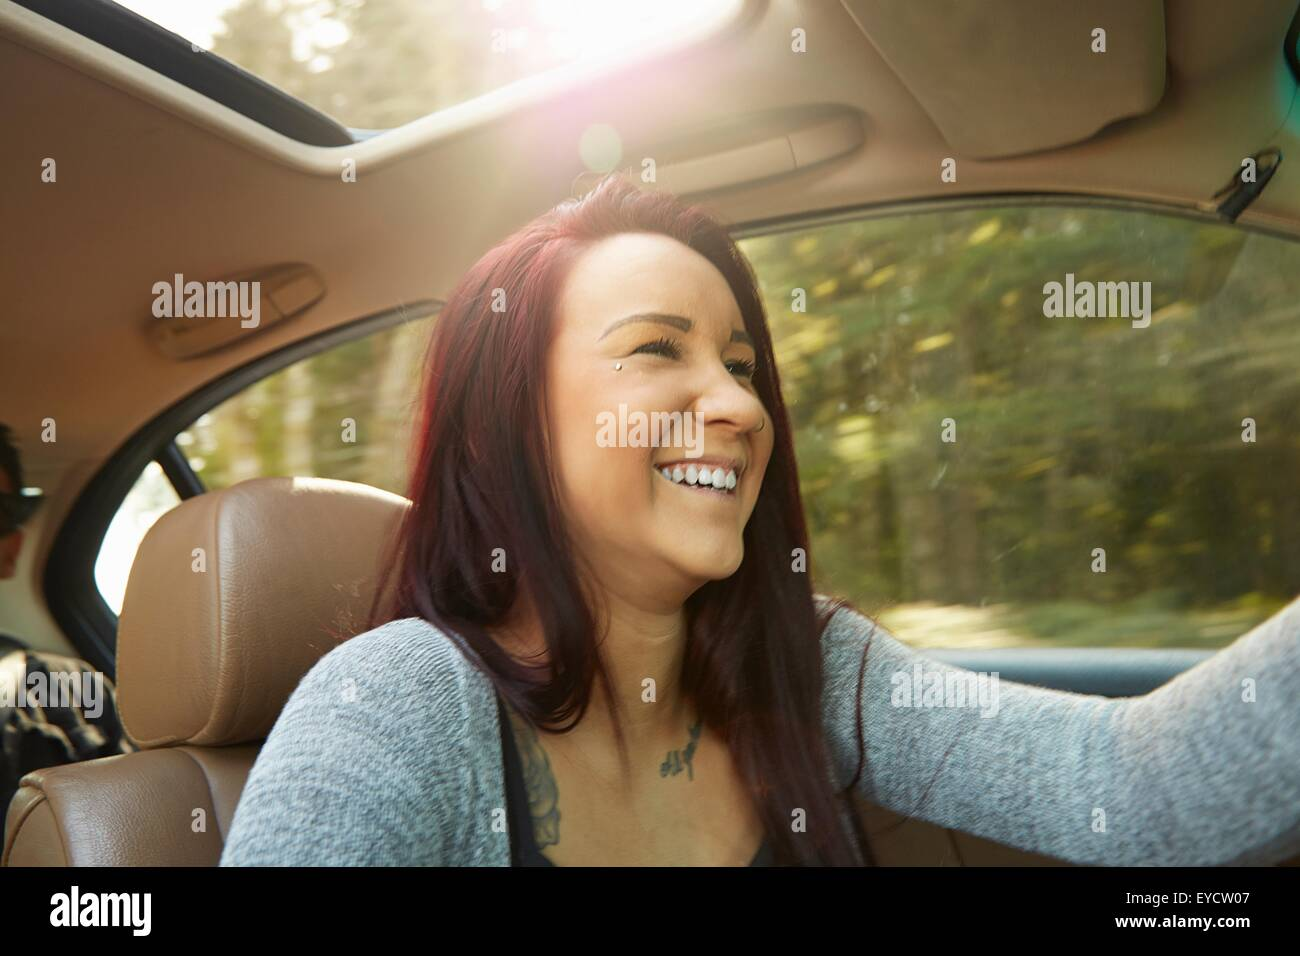 Smiling young woman driving car - Stock Image